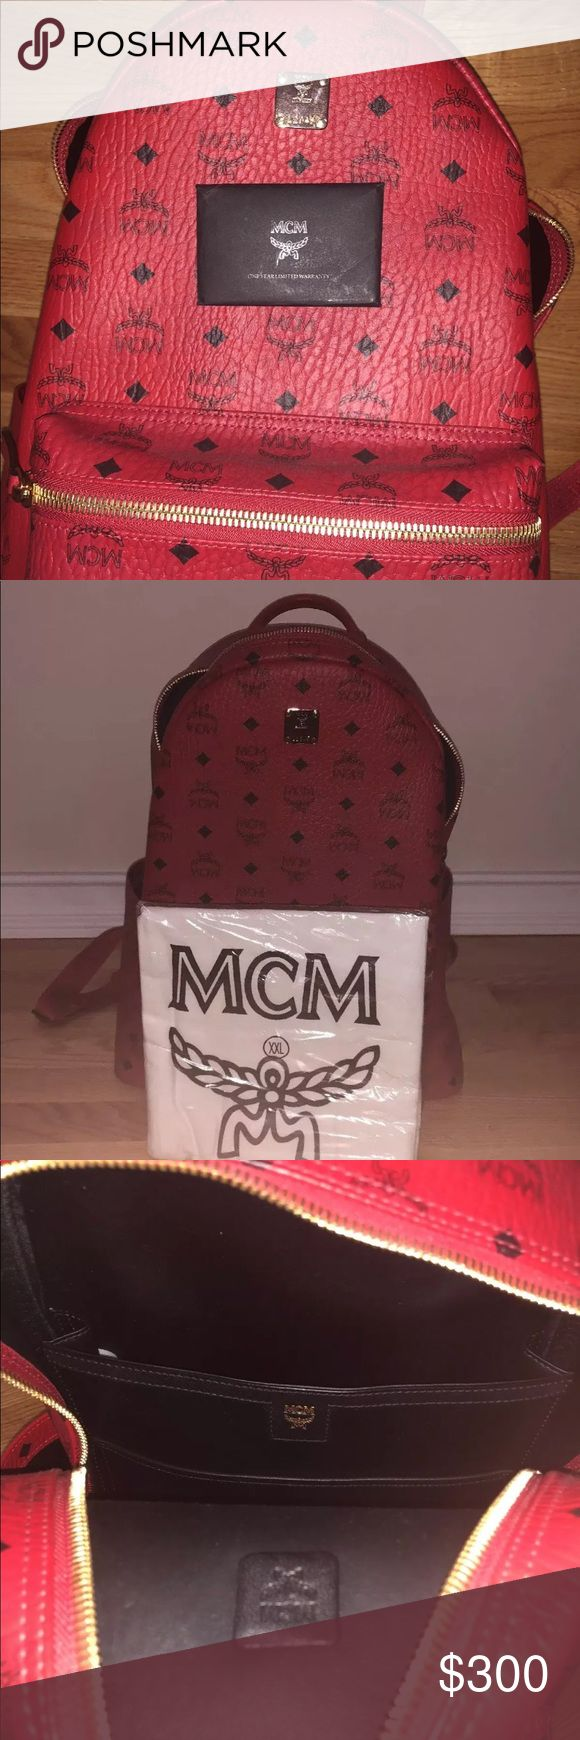 mcm backpack i sell cheap , authentic and multiple items so if you wanna buy text me @ 402-981-5572 MCM Bags Backpacks